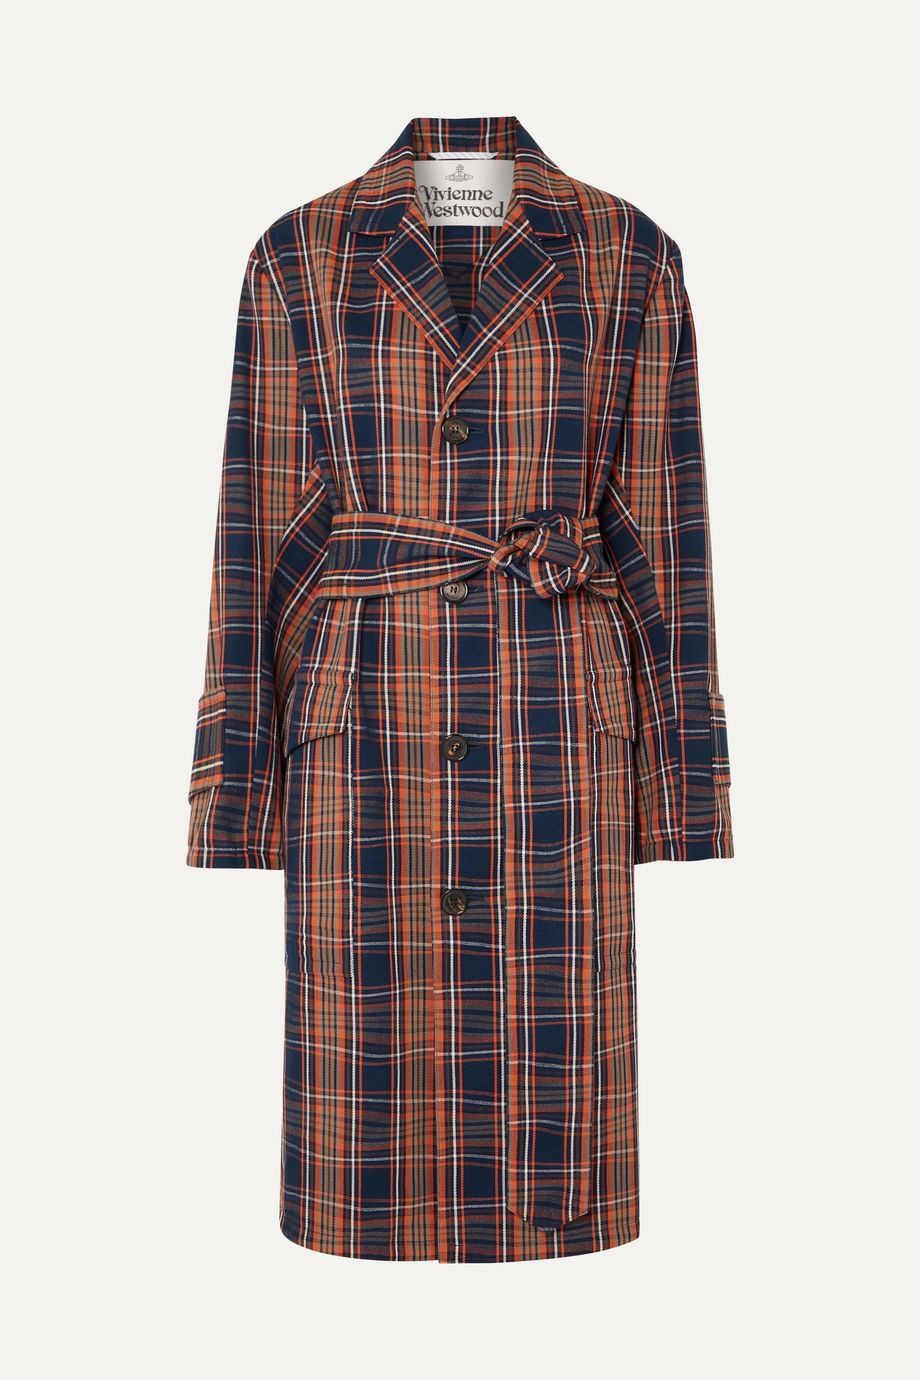 Vivienne Westwood Ophelia checked cotton-twill trench coat